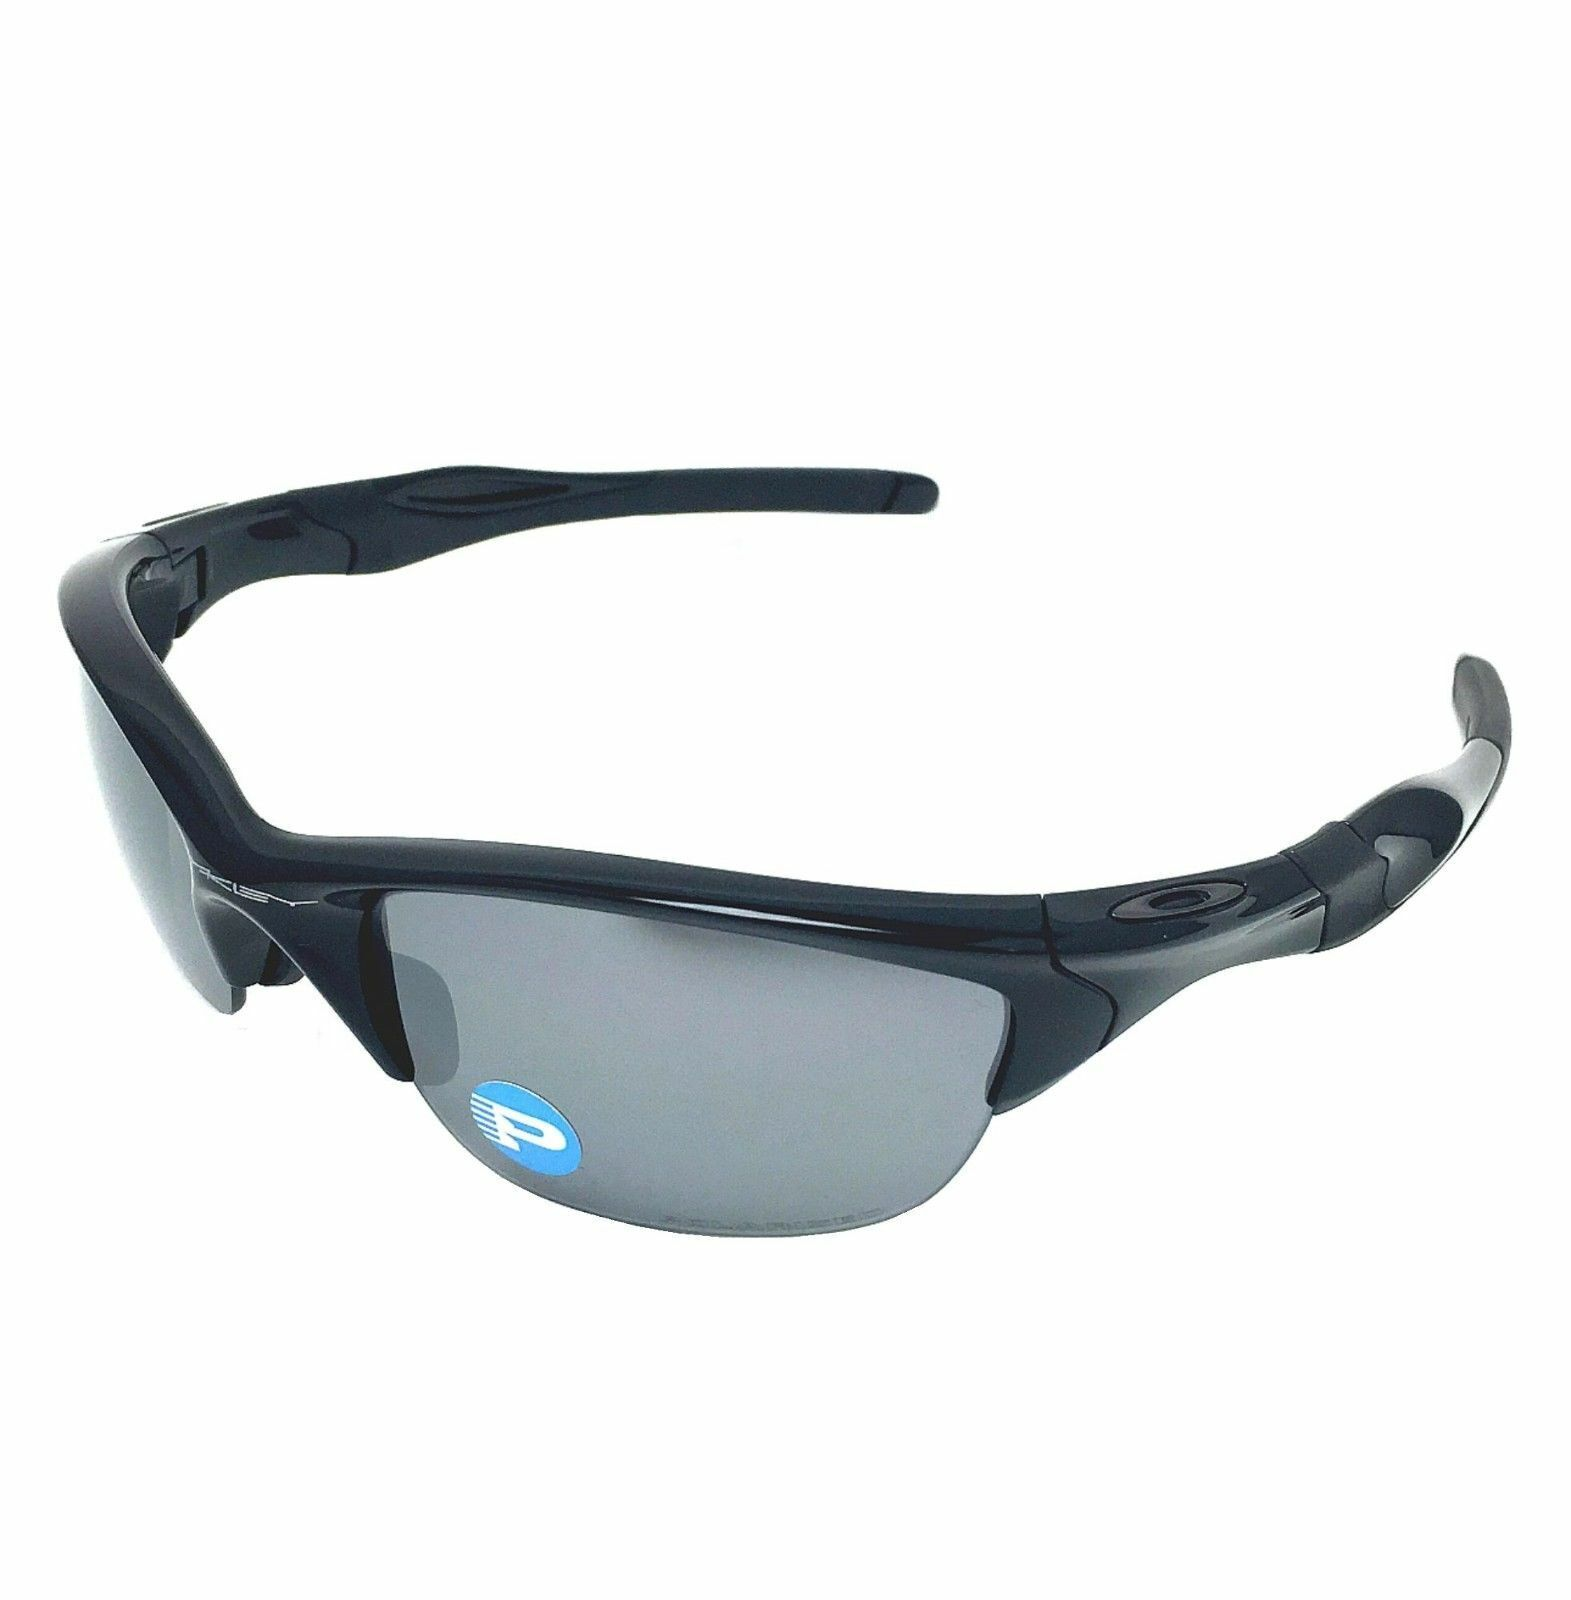 oakley-half-jacket-2-0-polarized-sunglasses-oo9144-04-black-w-black-iridium